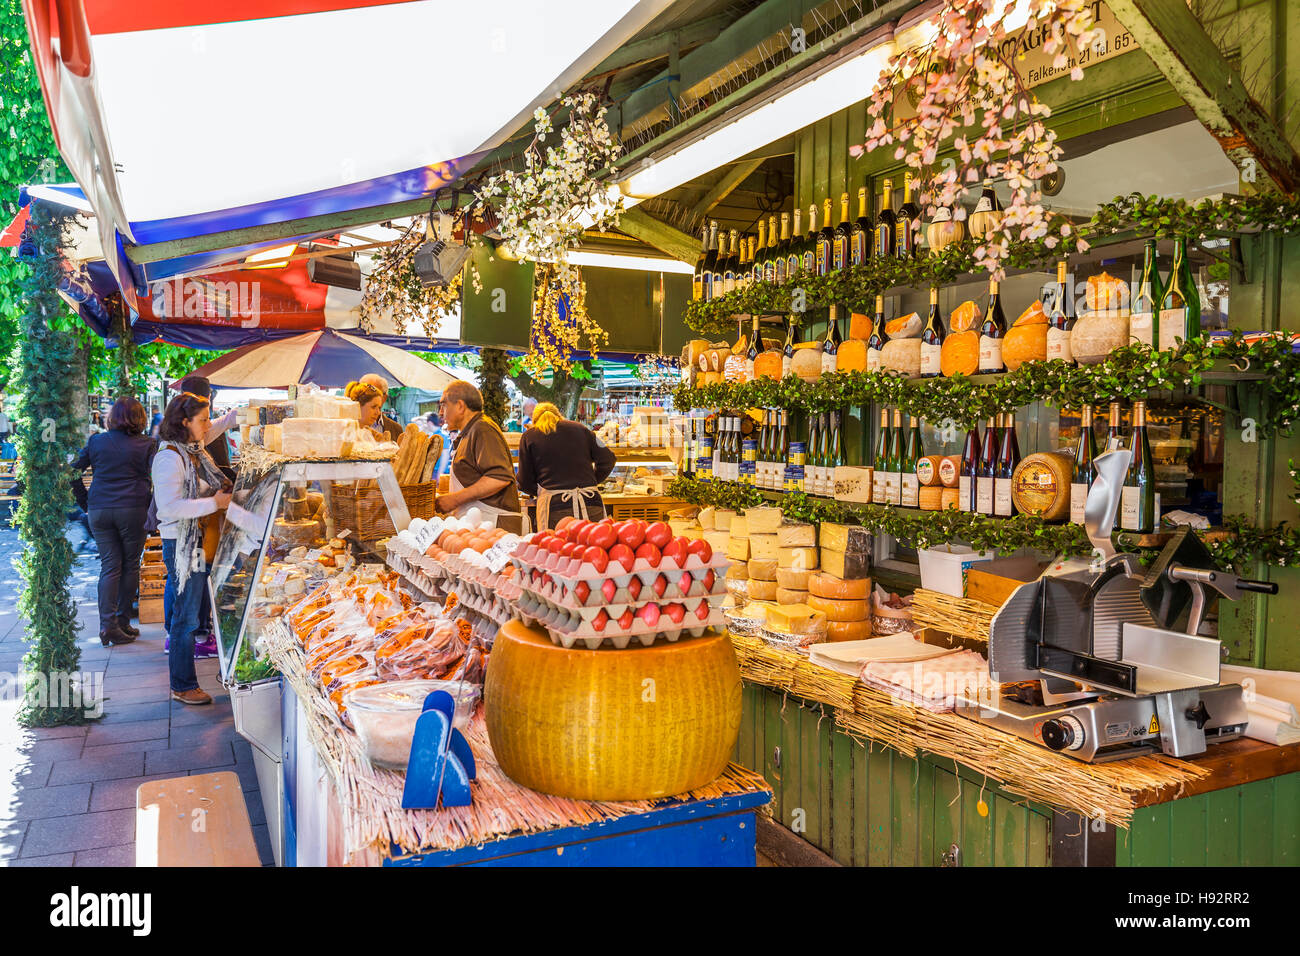 feinkost gourmet essen am viktualienmarkt markt m nchen bayern deutschland stockfoto bild. Black Bedroom Furniture Sets. Home Design Ideas